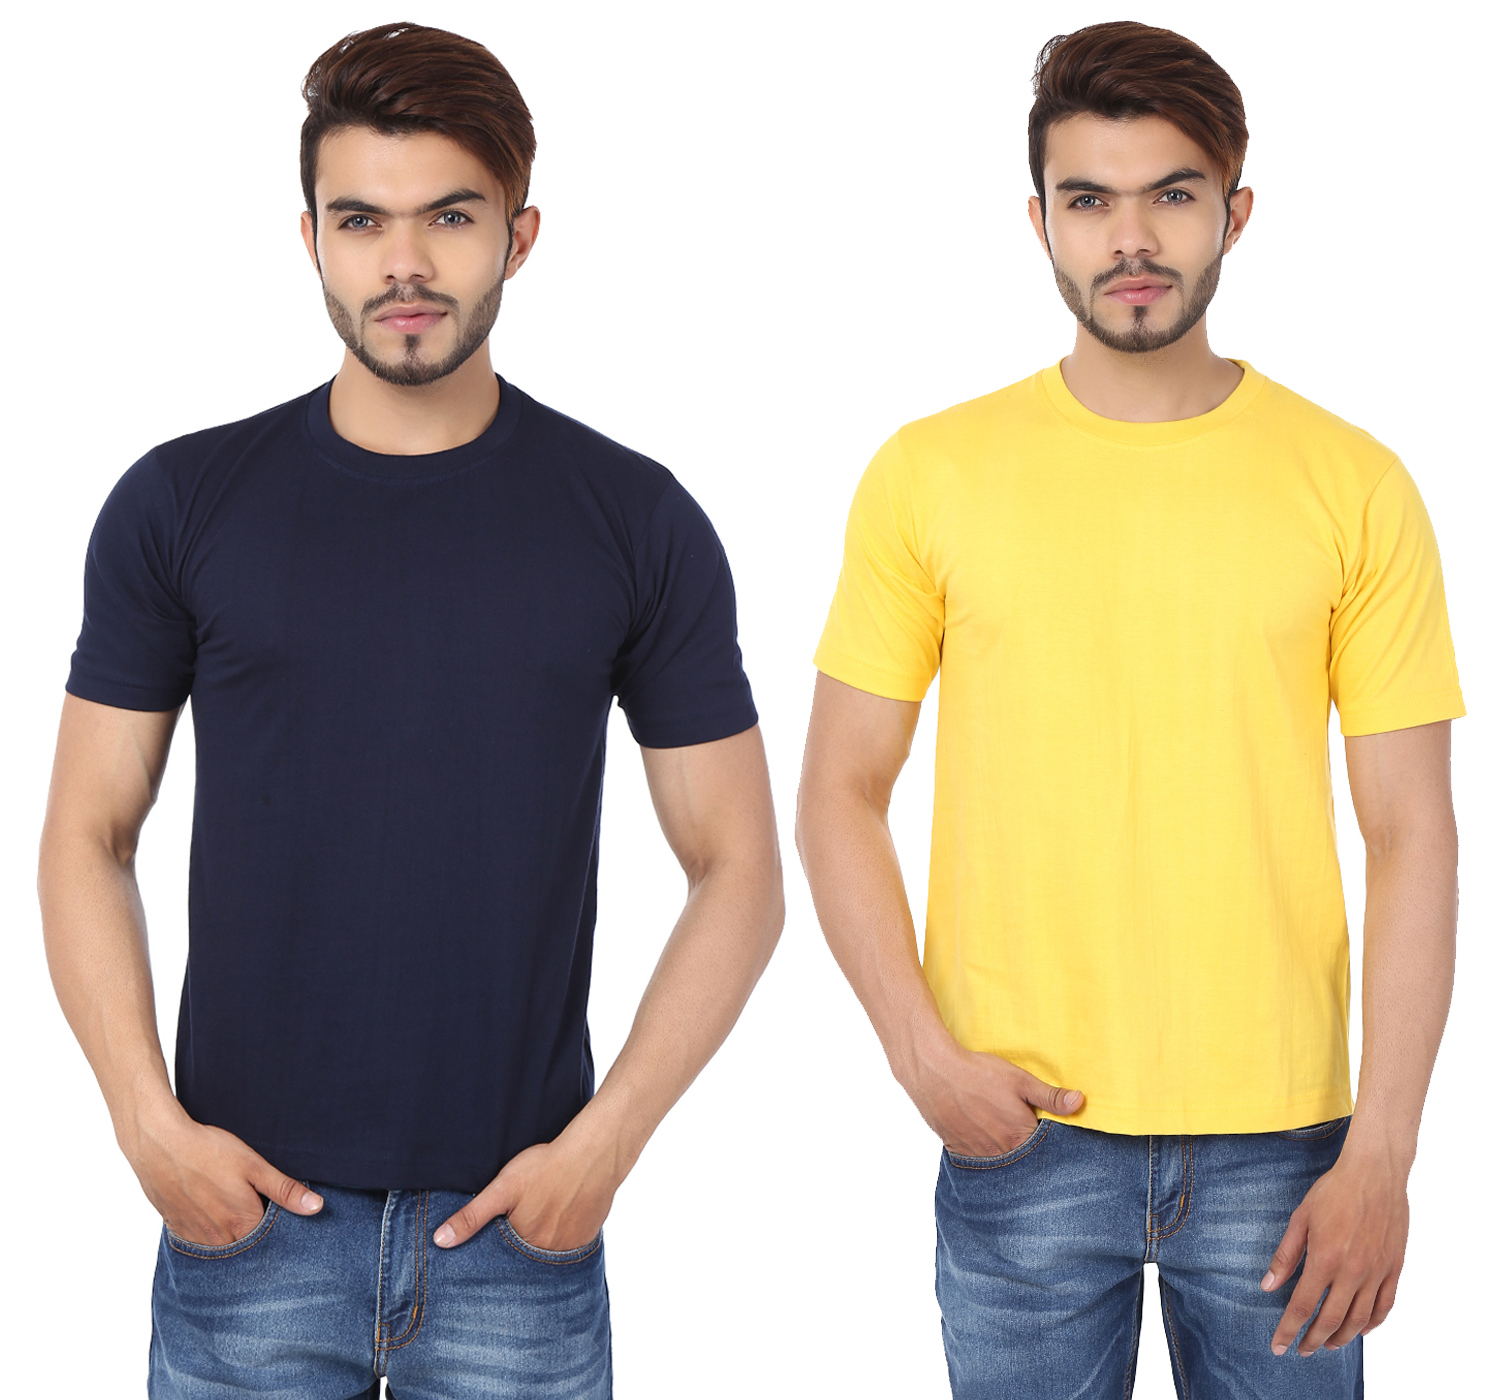 Weardo Combo Of Men's 2 Round Neck T-Shirts In Navy Blue & Yellow Color